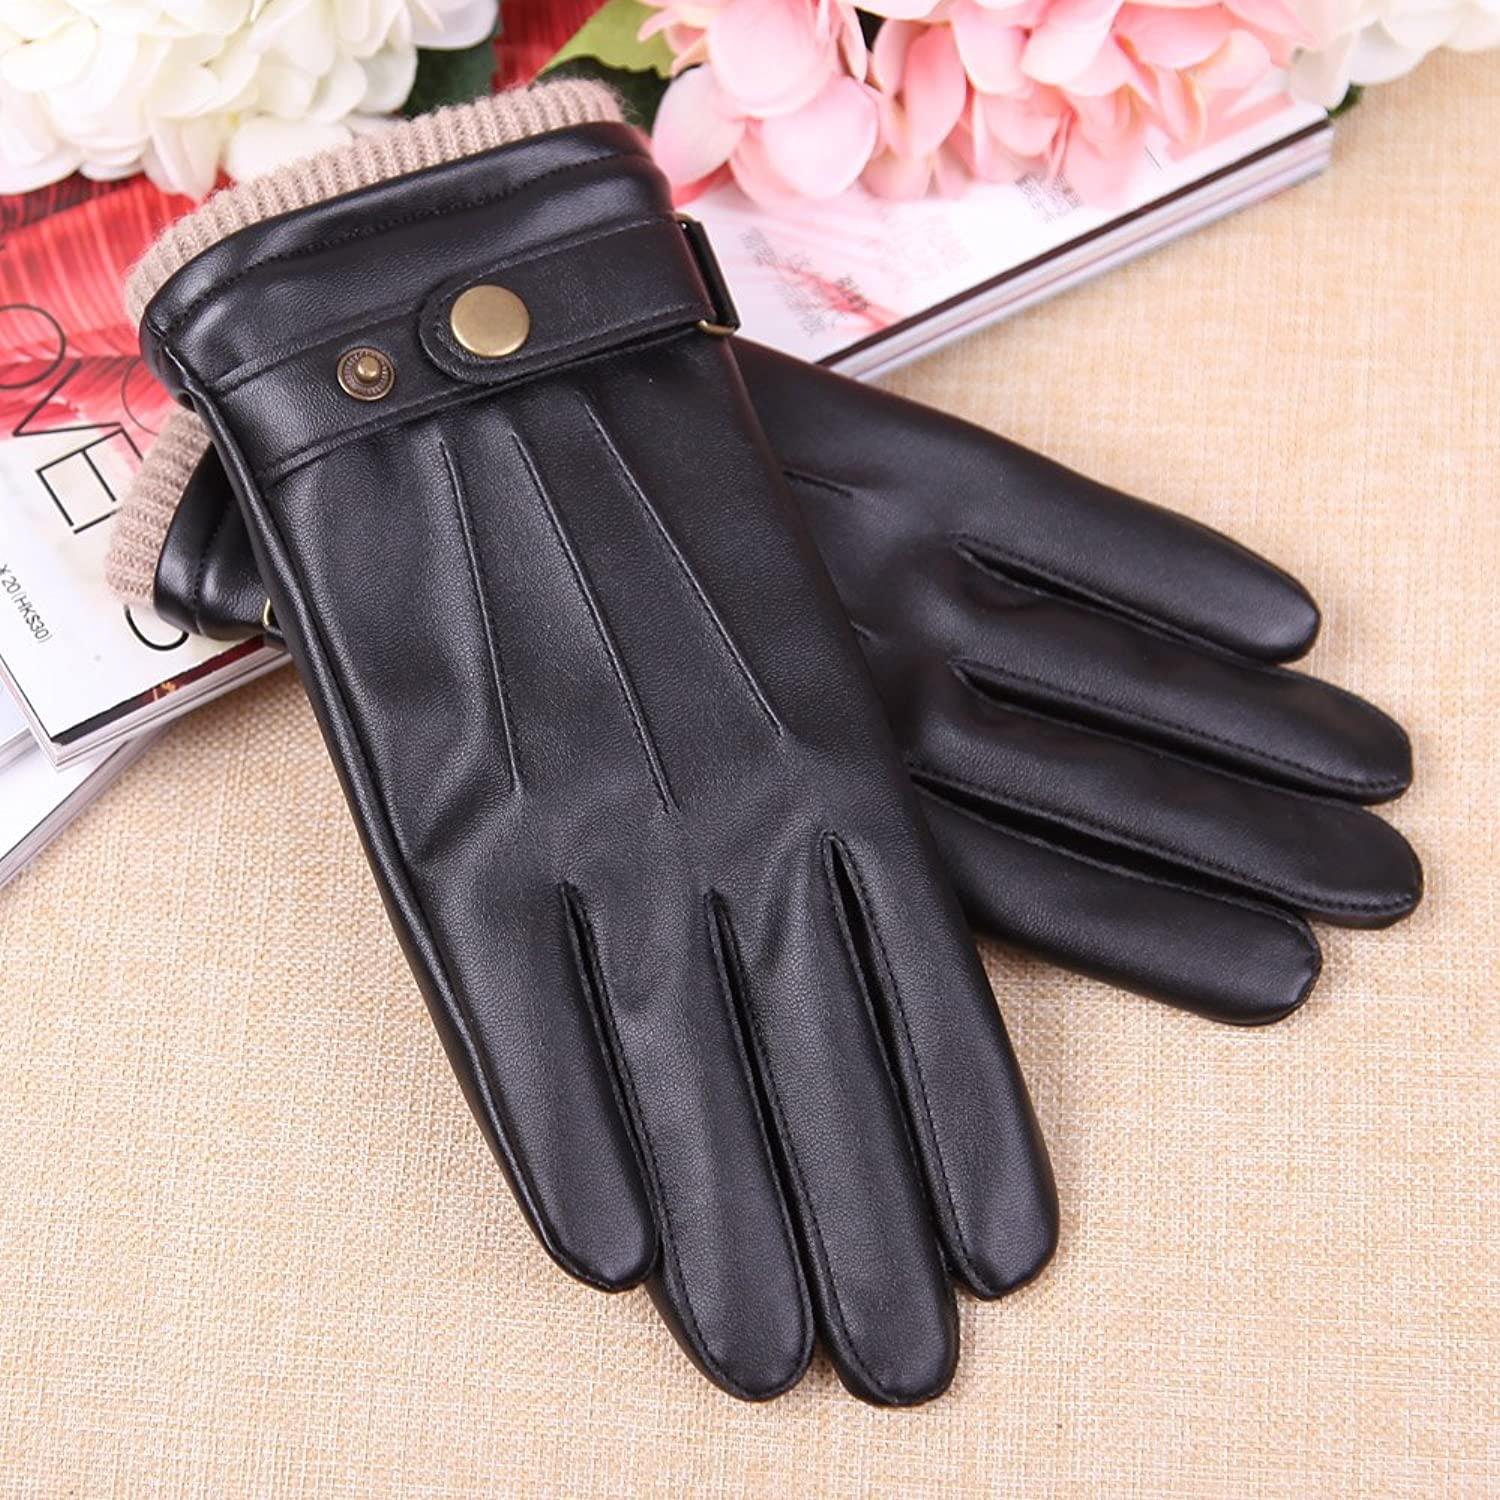 Fake leather driving gloves - Mens Touchscreen Texting Winter Pu Leather Gloves Driving Outdoor Long Fleece Lining 8 Black At Amazon Men S Clothing Store